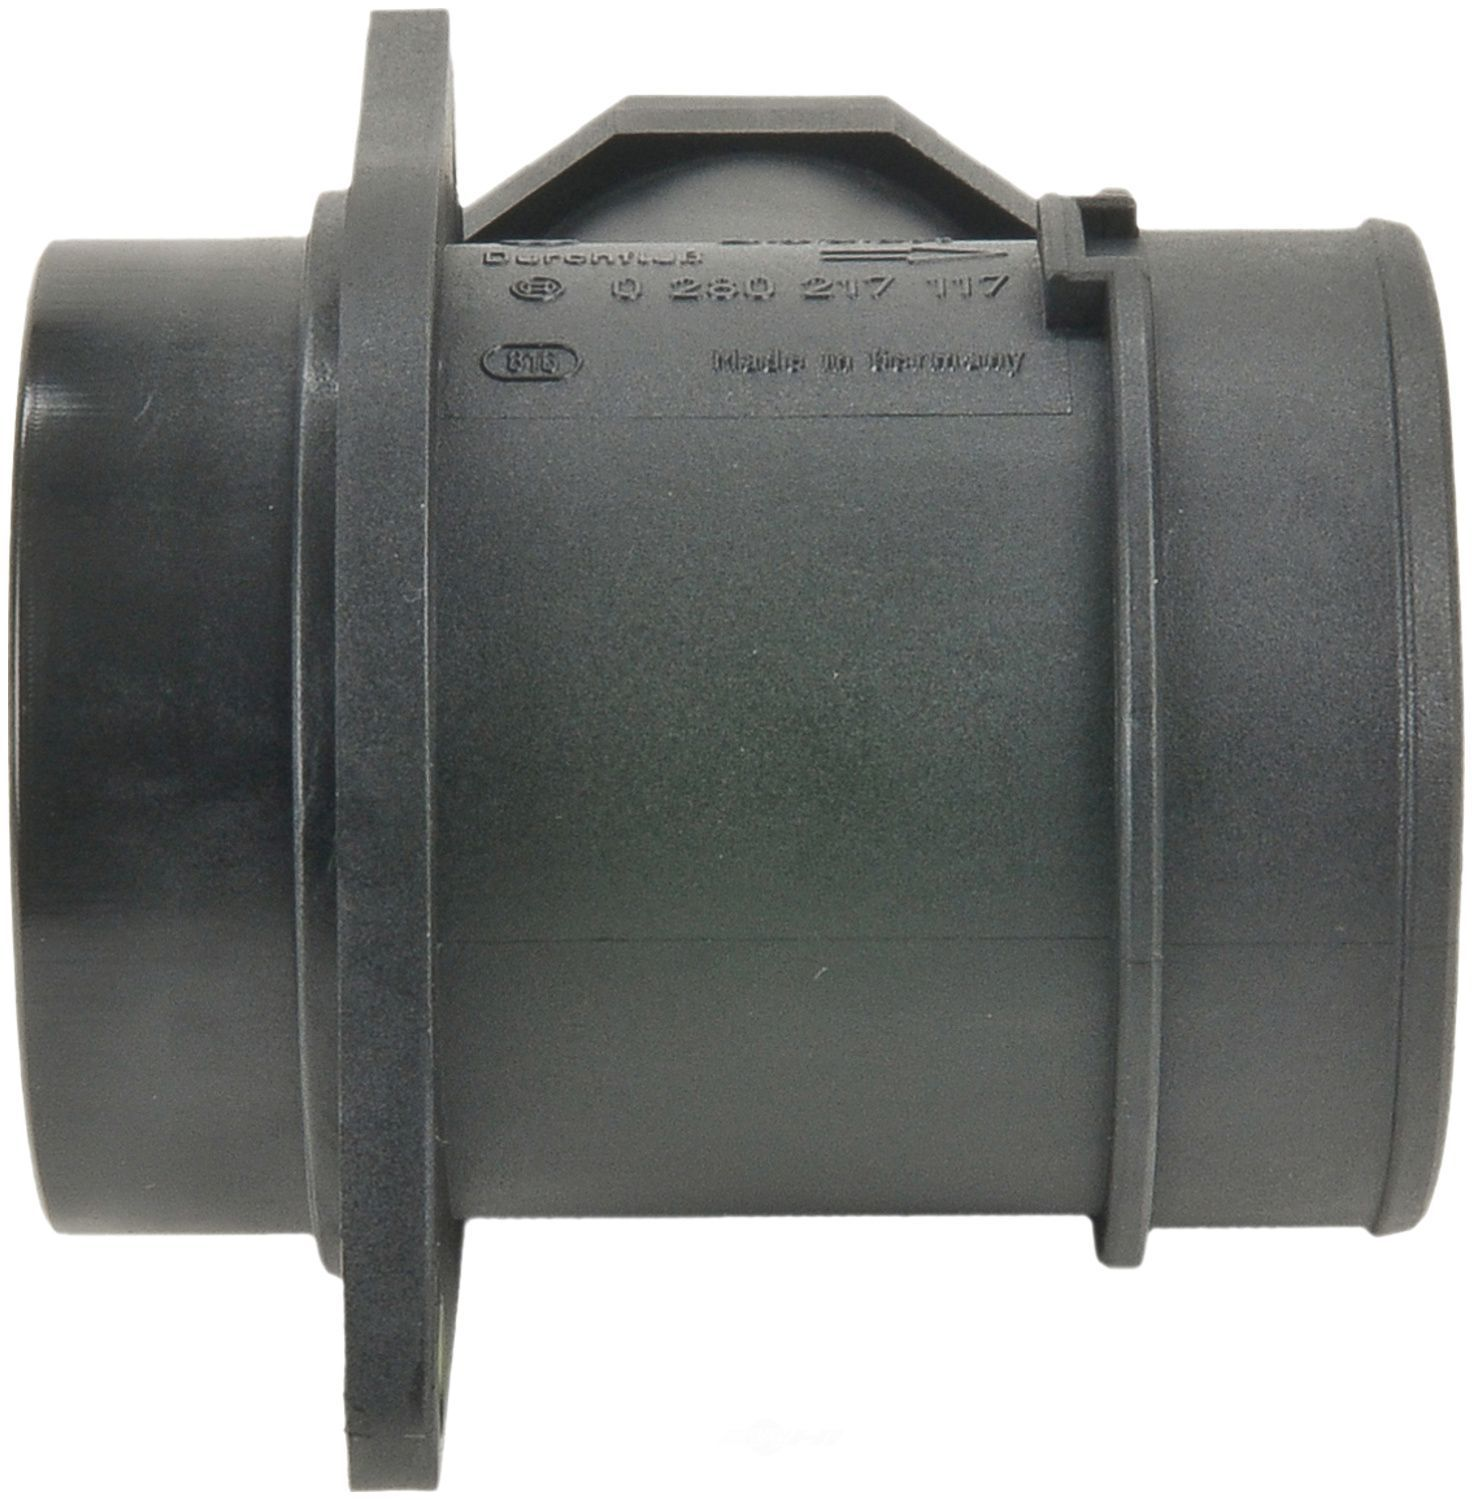 BOSCH - Fuel Injection Air Flow Meter - BOS 0280217117